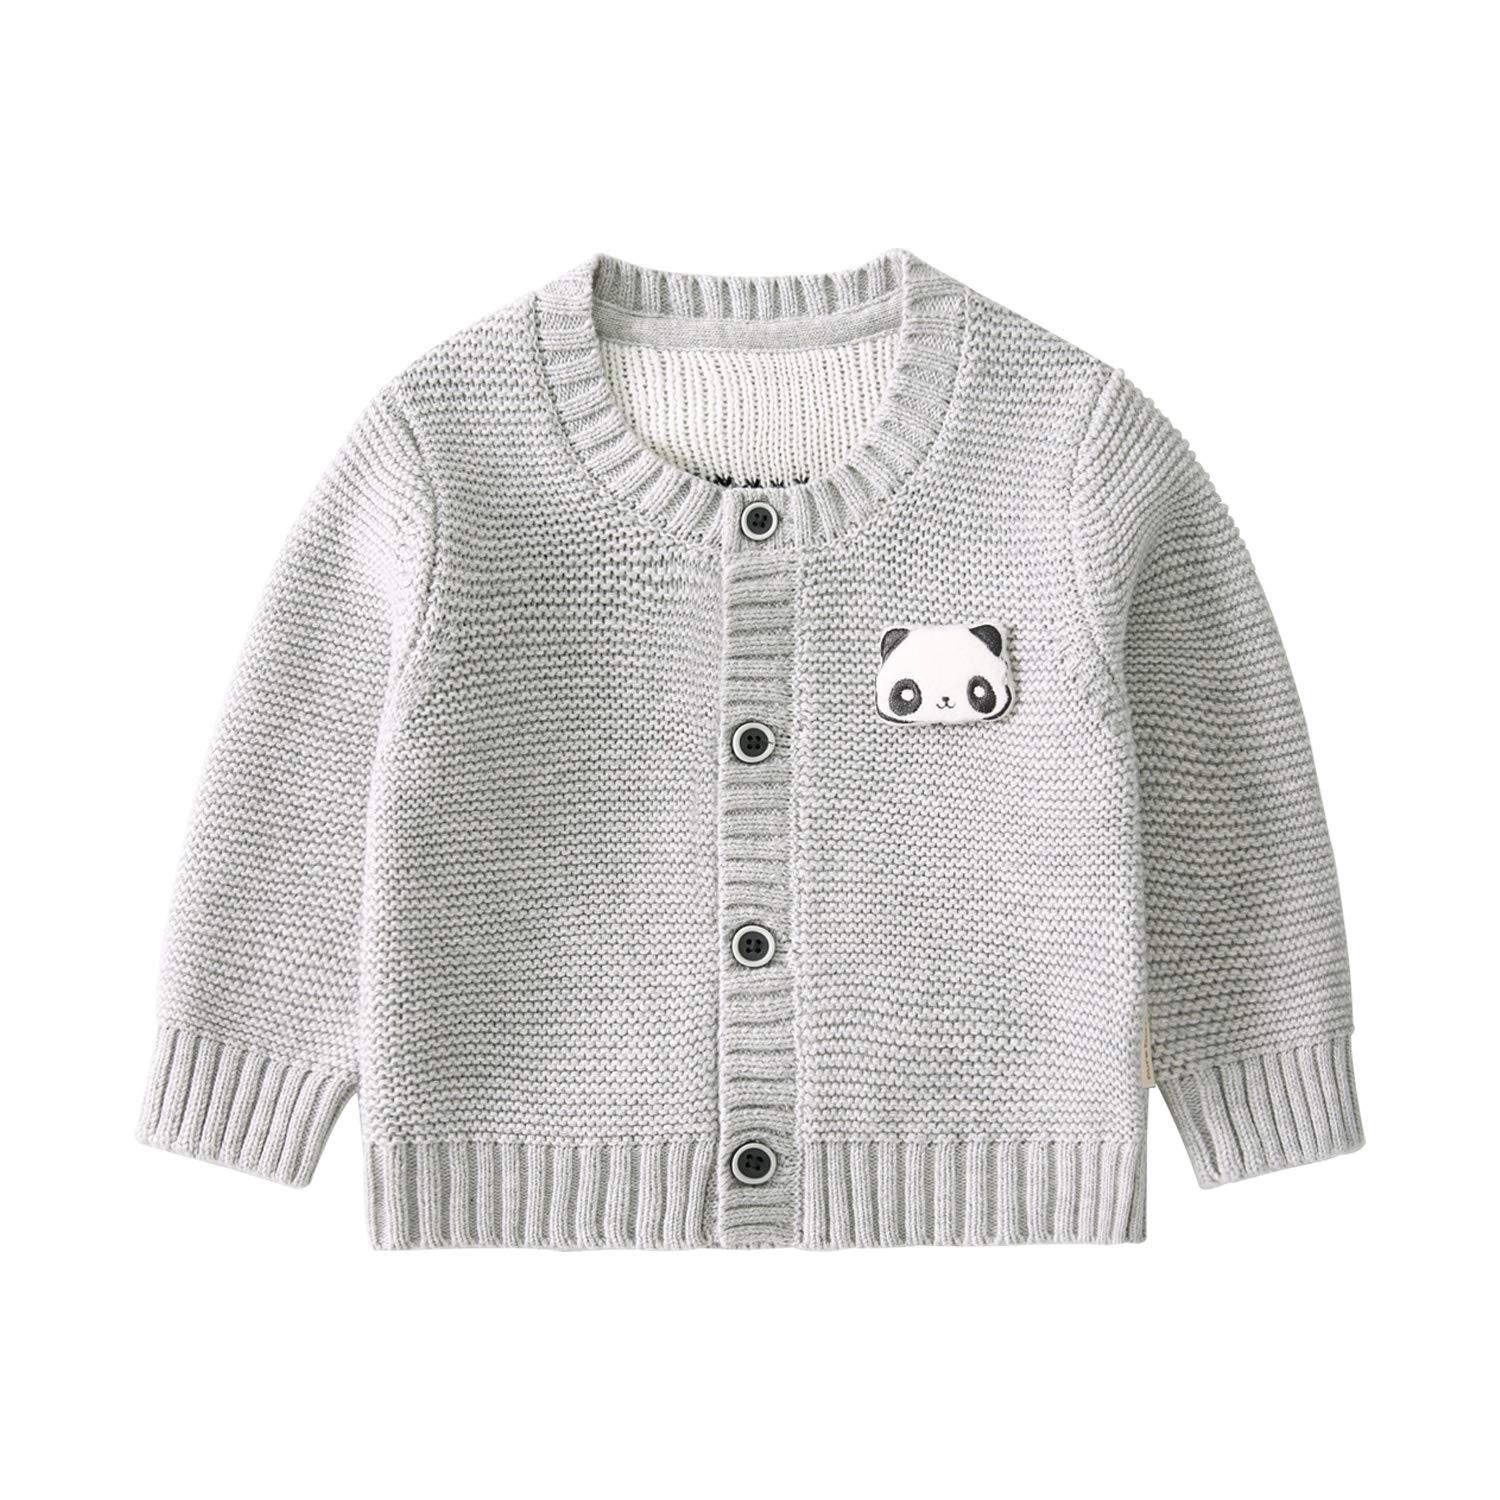 pureborn Baby Boy Cotton Cartoon Panda Knit Cardigan Button Down Sweater Gray 6-12 Months by pureborn